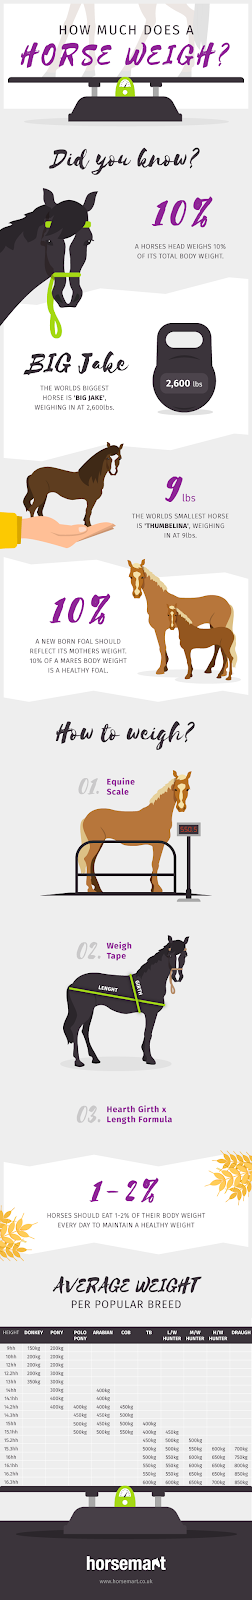 horse weight infographic